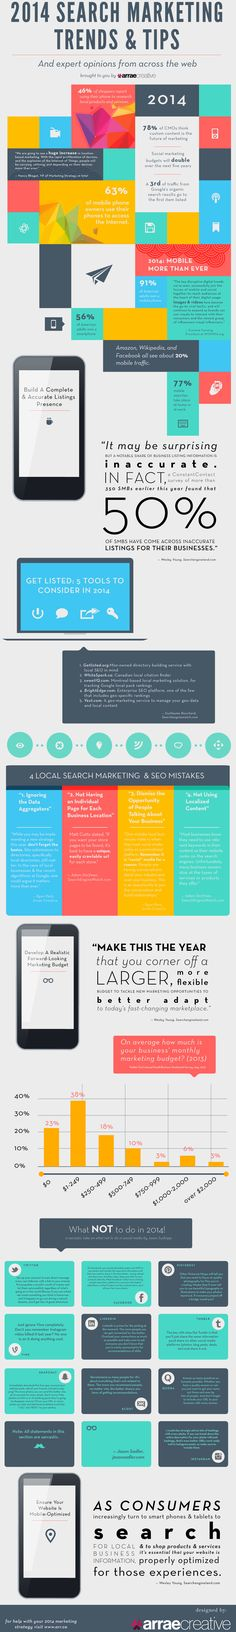 2014 Online Marketing #Trends And Tips  #infographic -   #OnlineMarketing #technology #2014 #InternetMarketing #DigitalMarketing